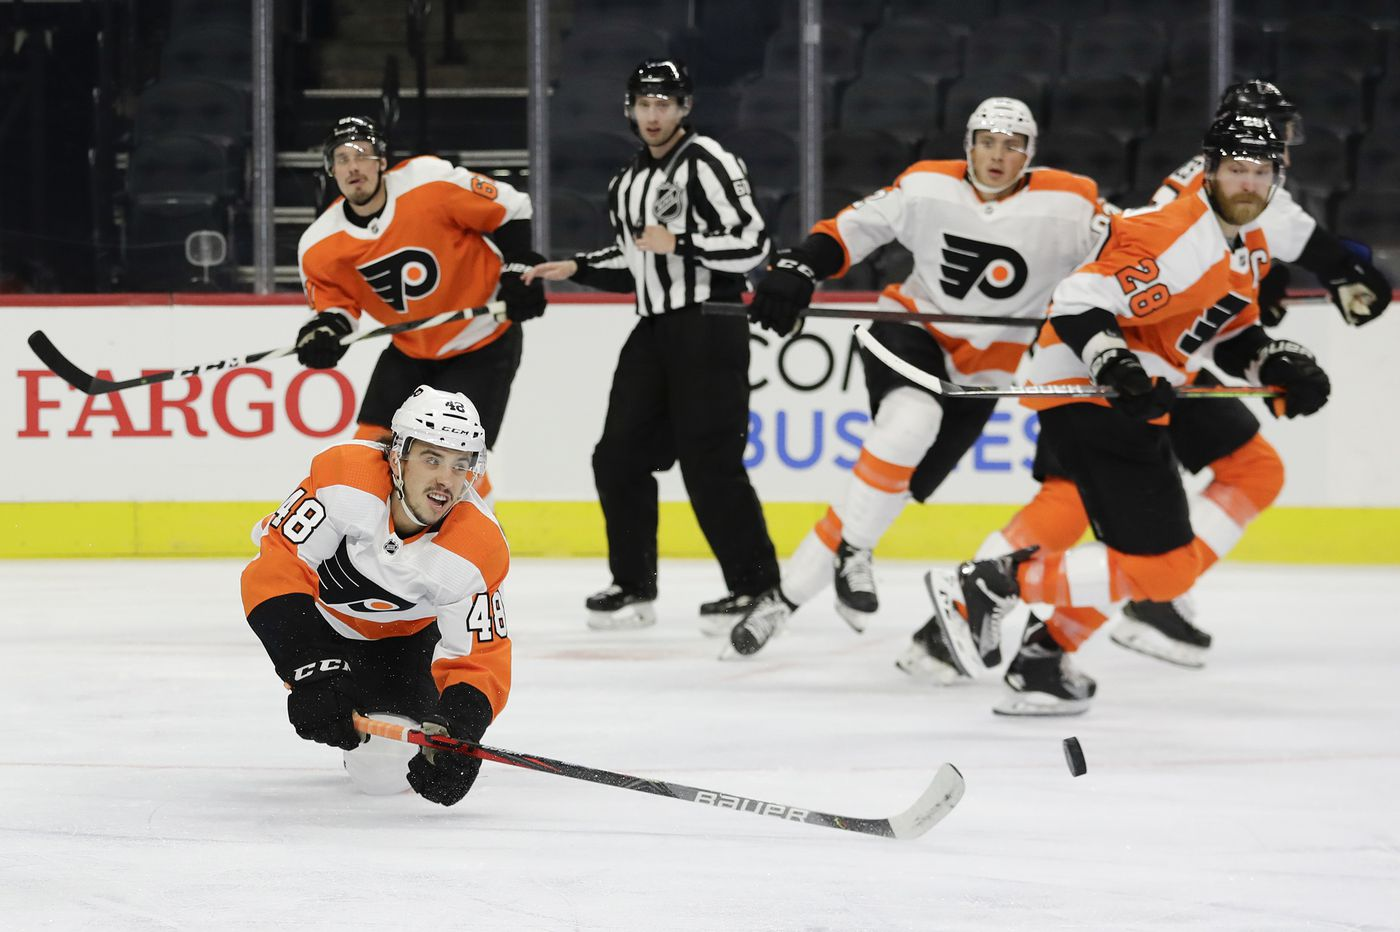 Morgan Frost earns spot on Flyers' final roster; Samuel Morin, six others clear waivers